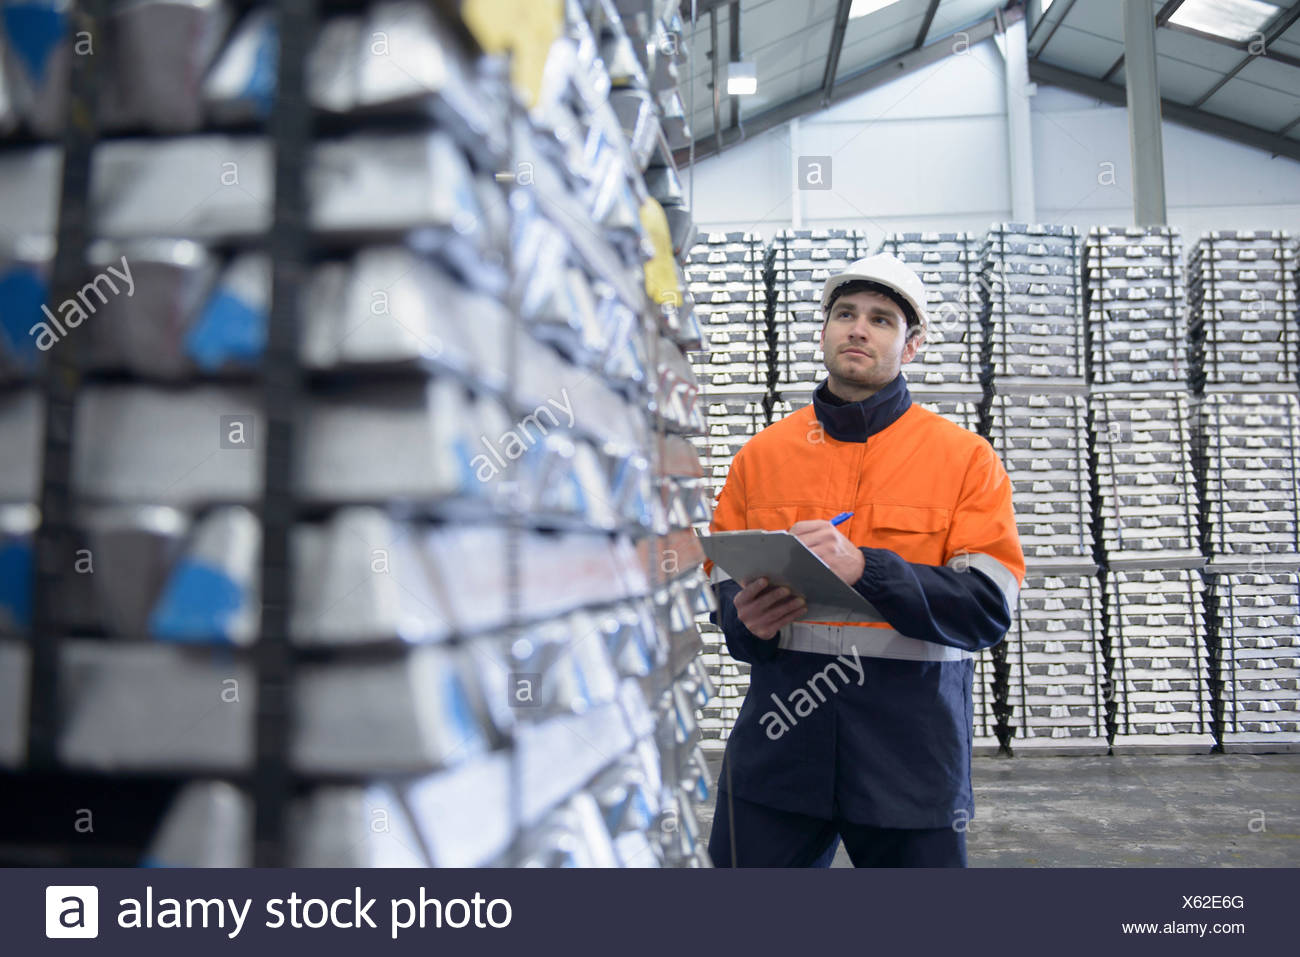 Warehouse worker checking stock - Stock Image